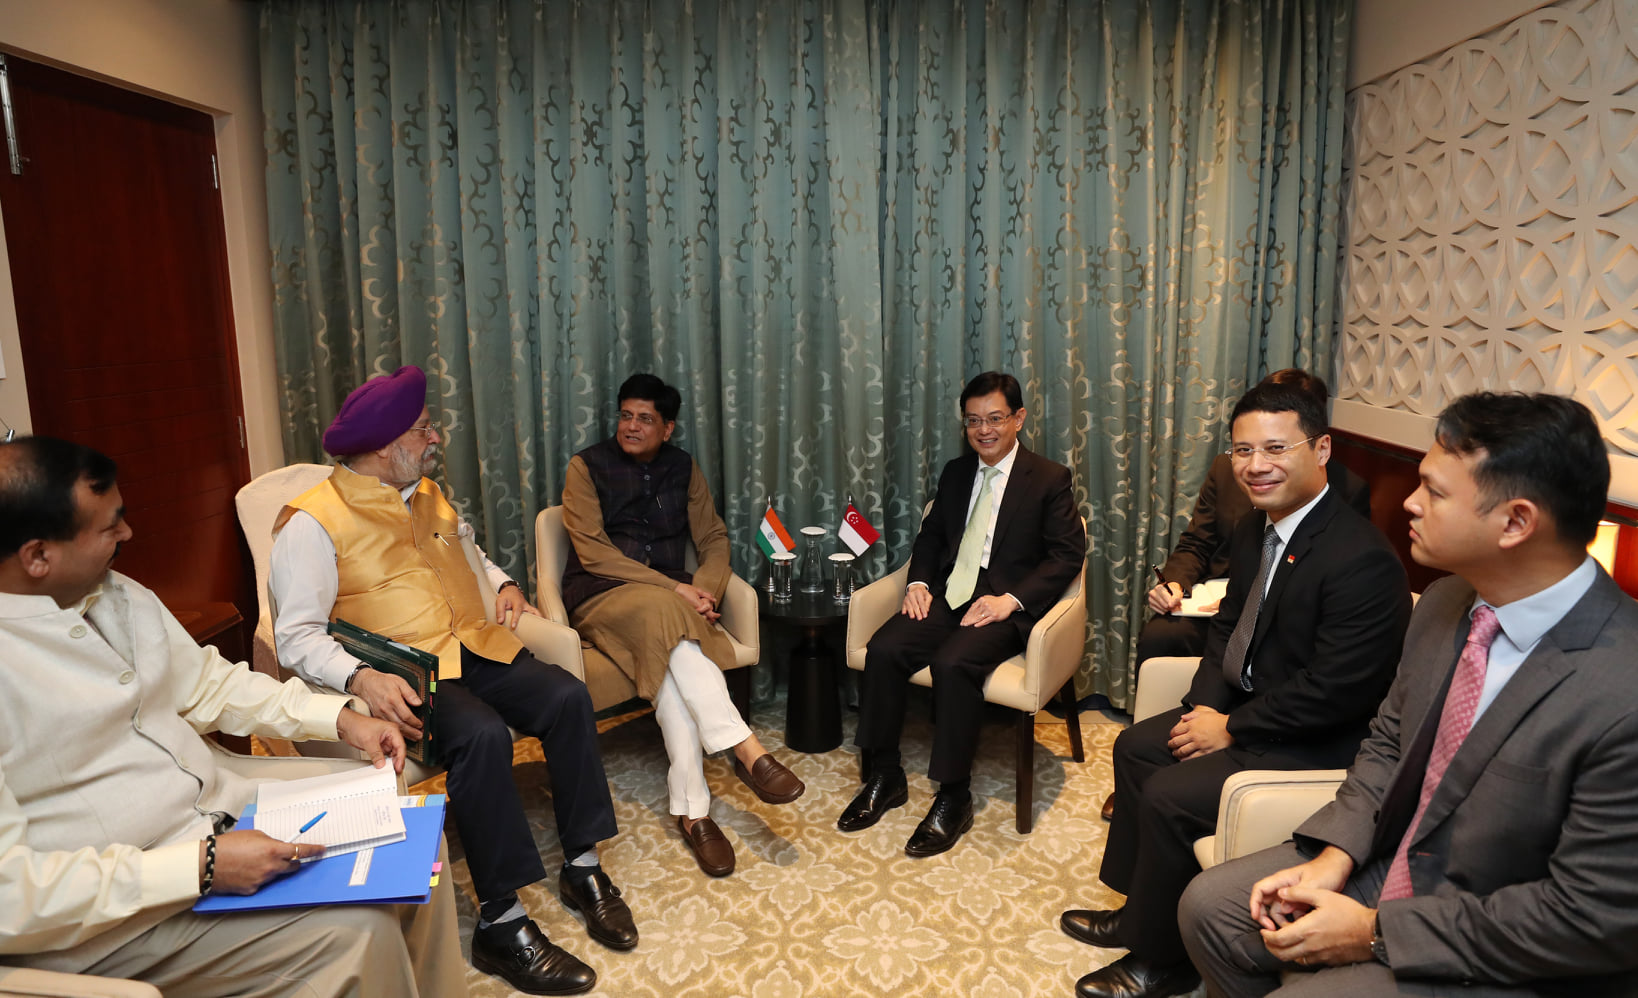 Singapore's DPM Heng Swee Keat meeting foreign counterparts Minister of Railways, and Minister of Commerce and Industry of India Piyush Goyal and Ministry of State (Independent Charge) Civil Aviation, Housing & Urban Affairs and Commerce & Industry Hardeep Singh Puri at the sidelines of India Economic Summit. Photo courtesy: MCI, Fyrol